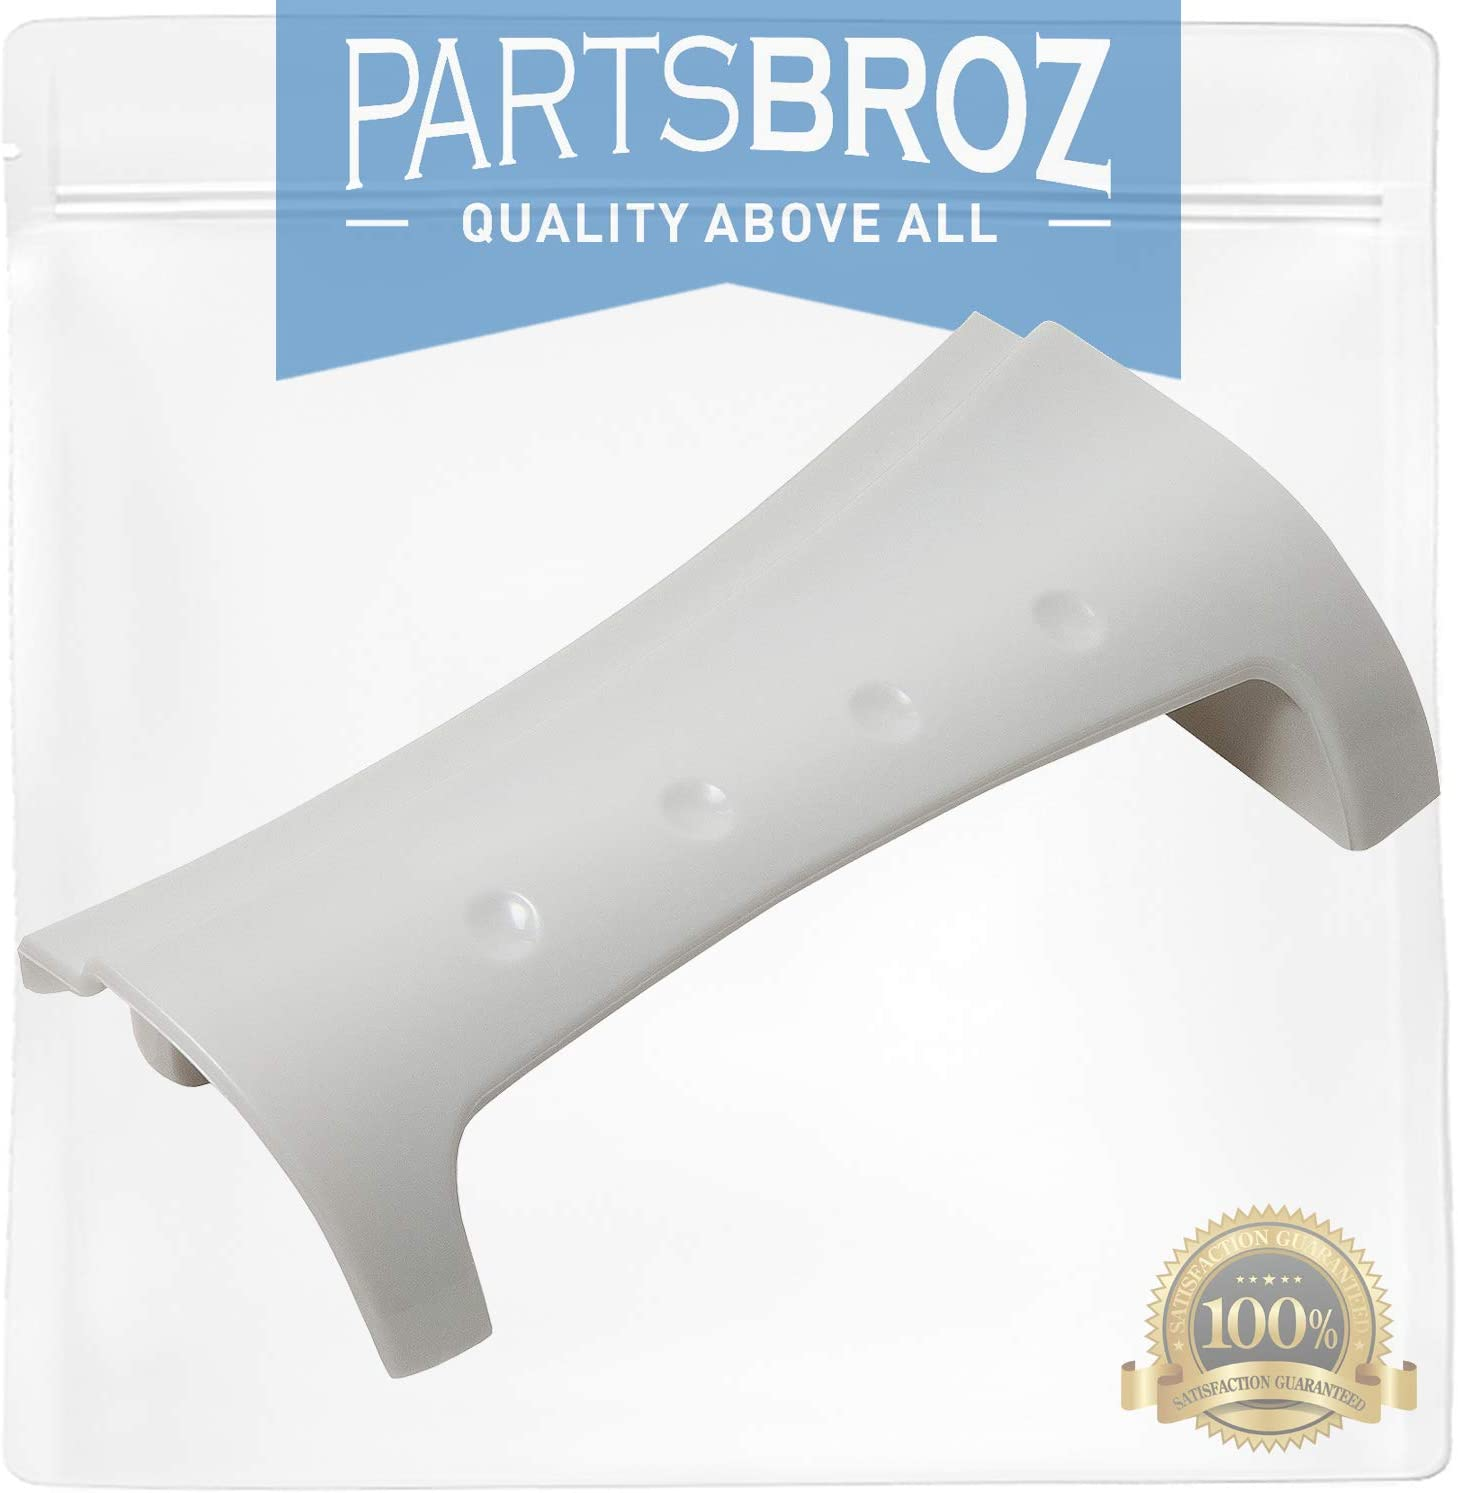 8181846 Door Handle for Front Load Whirlpool Washers by PartsBroz - Replaces Part Numbers AP6011739, WP8181846, PS11744938, WP8181846VP